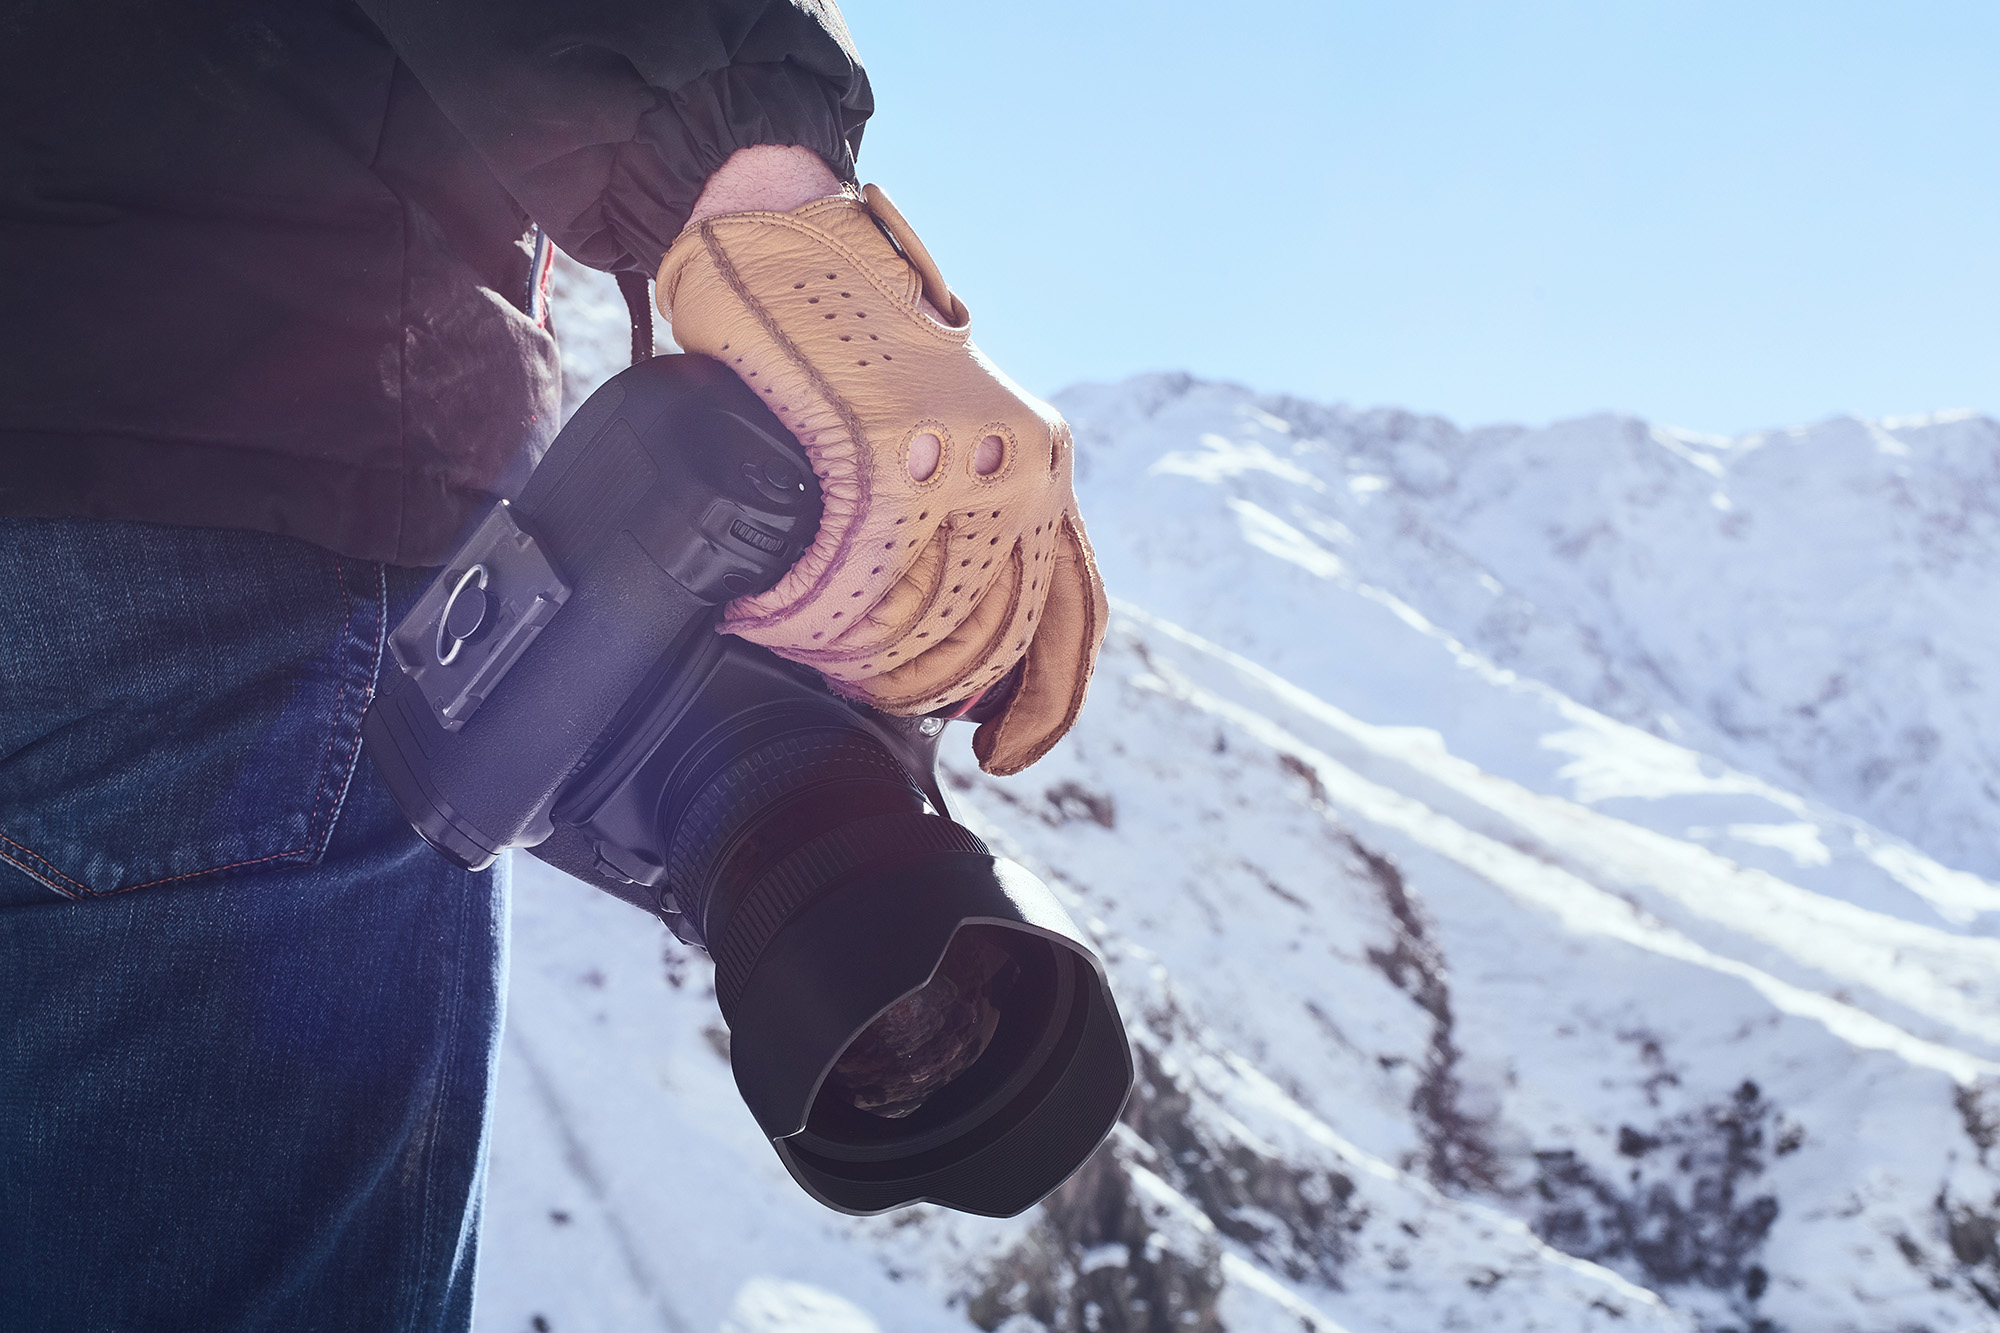 photographer camera dslr mountain snow glove blue sky